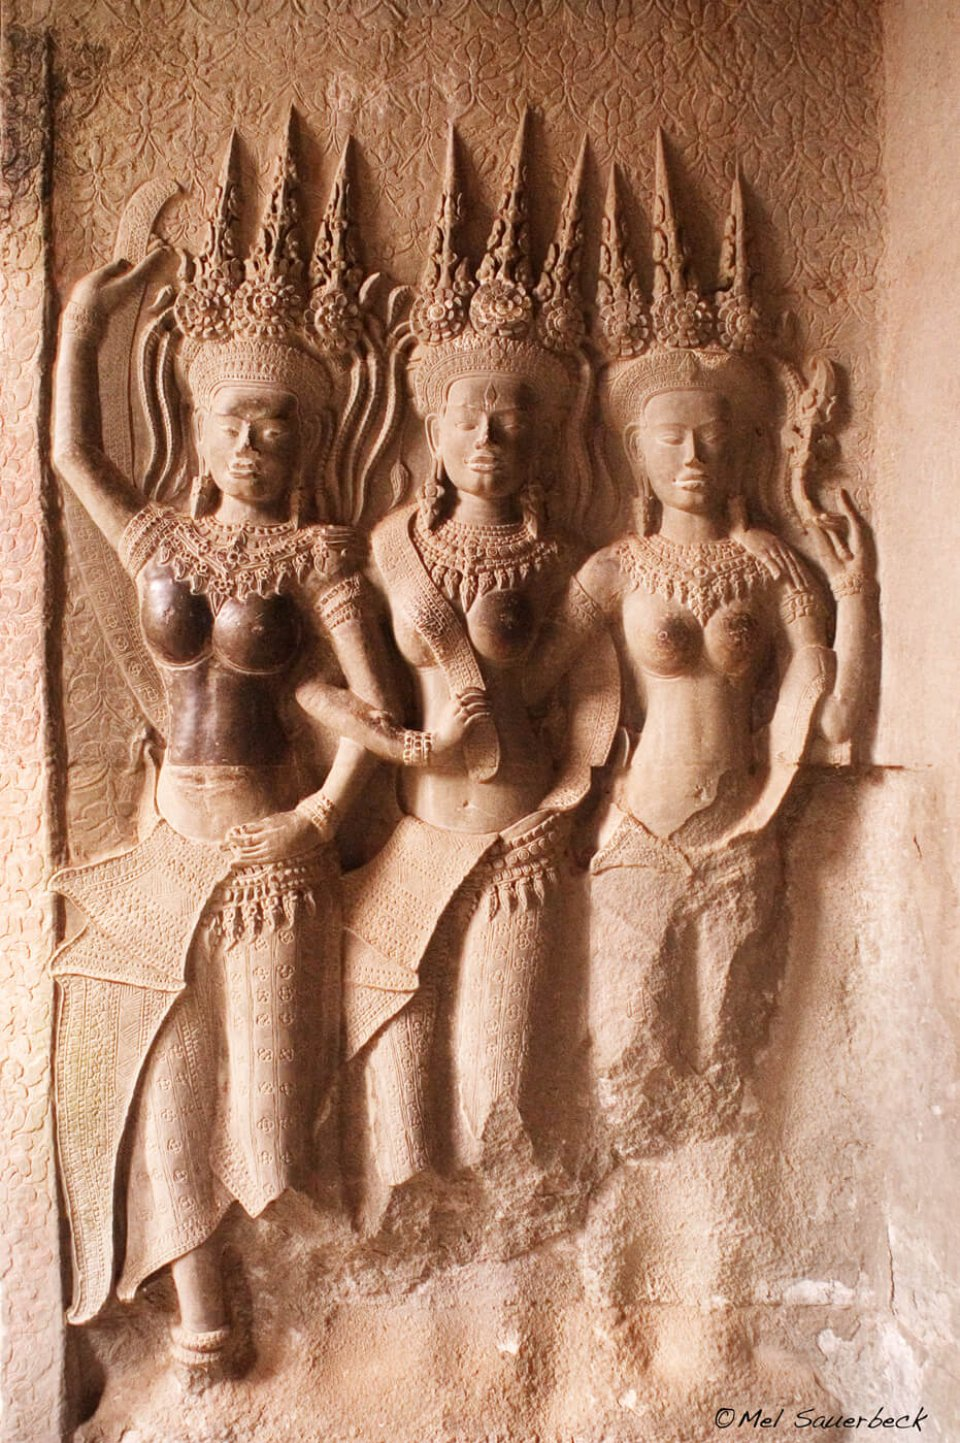 Statue of three goddesses, Angkor Wat, Cambodia